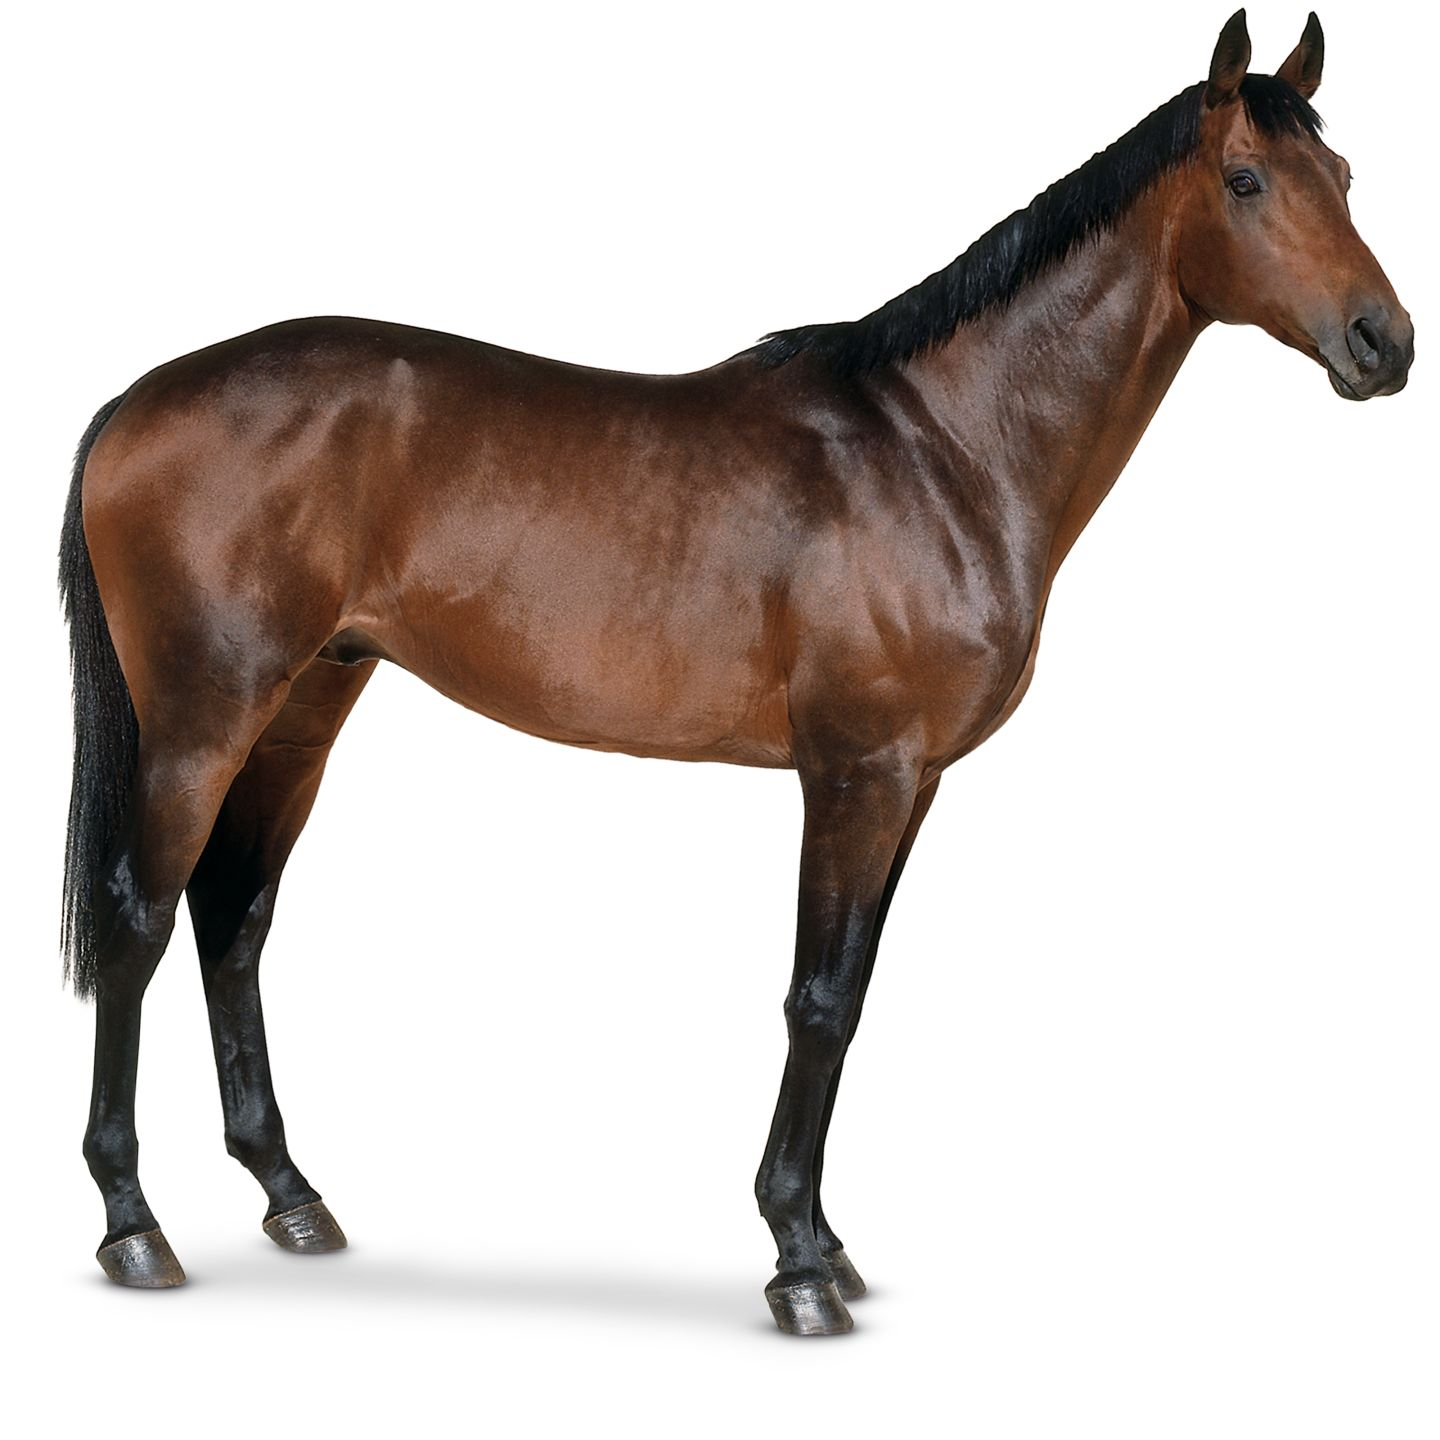 Brown Horse Type 414.93 Kb